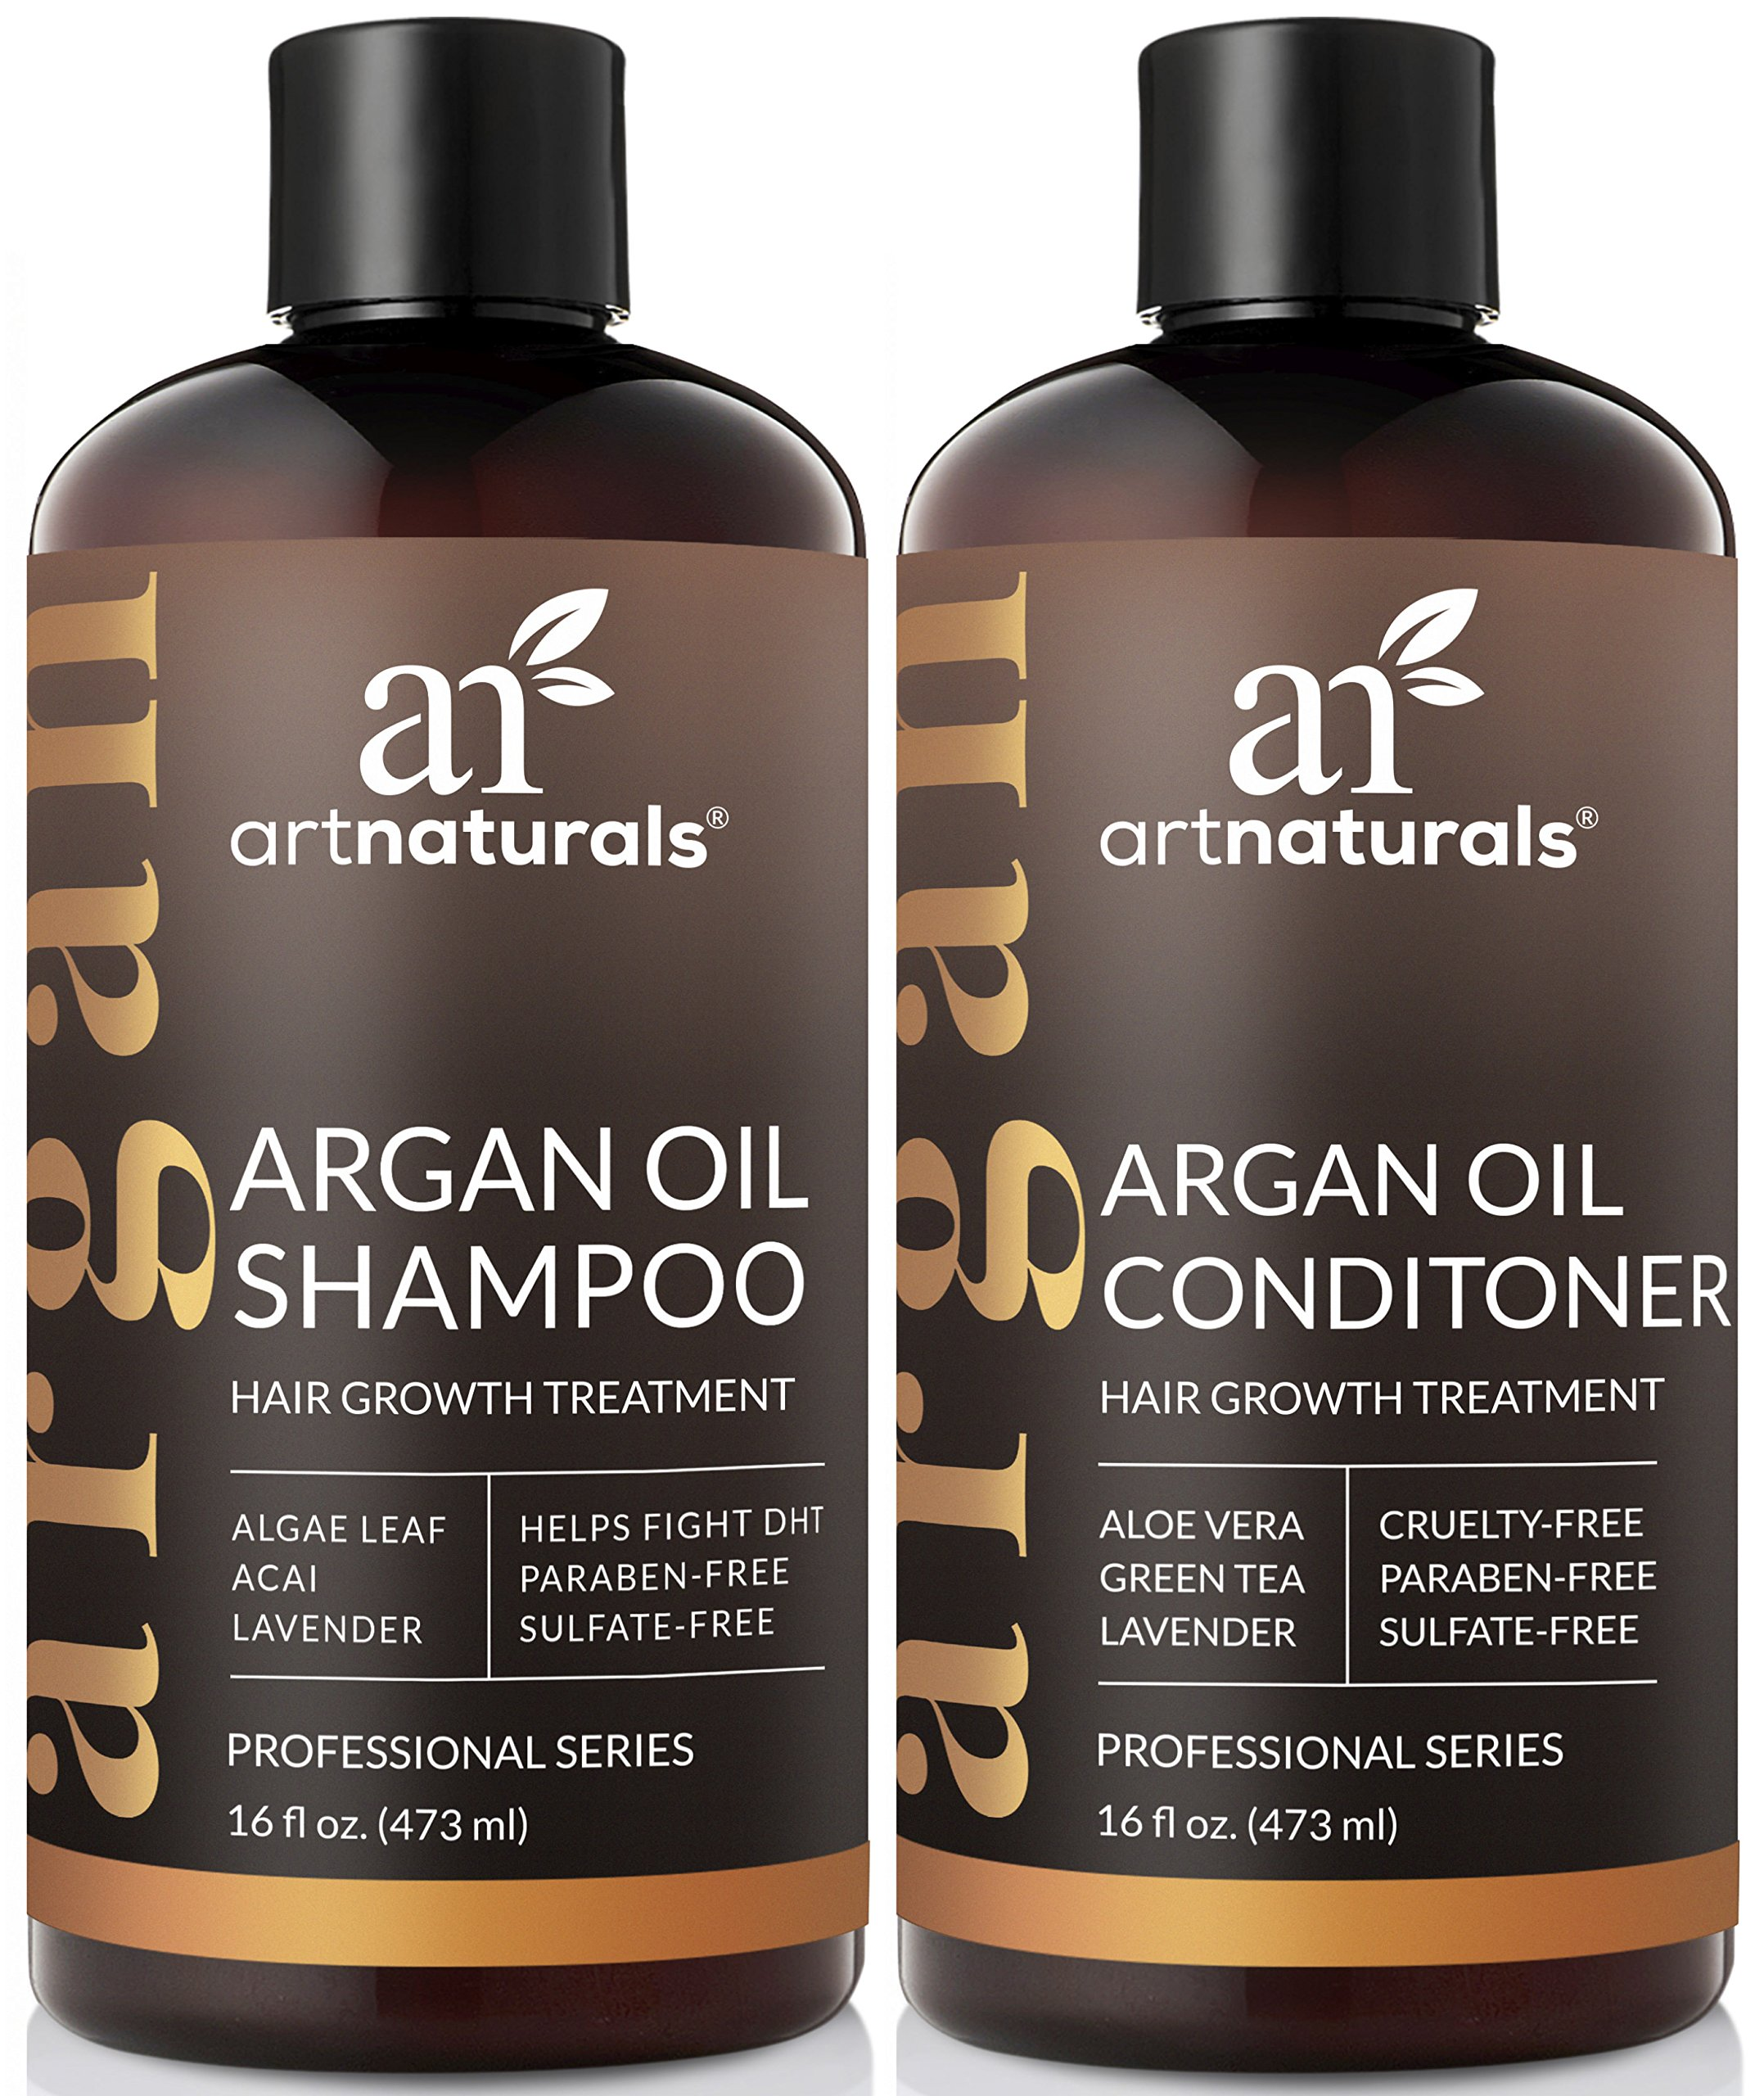 ArtNaturals Moroccan Argan Oil Hair Loss Shampoo & Conditioner Set - Hair Regrowth (2x16Oz) Sulfate Free- Treatment for Hair Loss, Thinning Hair & Hair Growth, Men & Women- Made W/Organic Ingredients by ArtNaturals